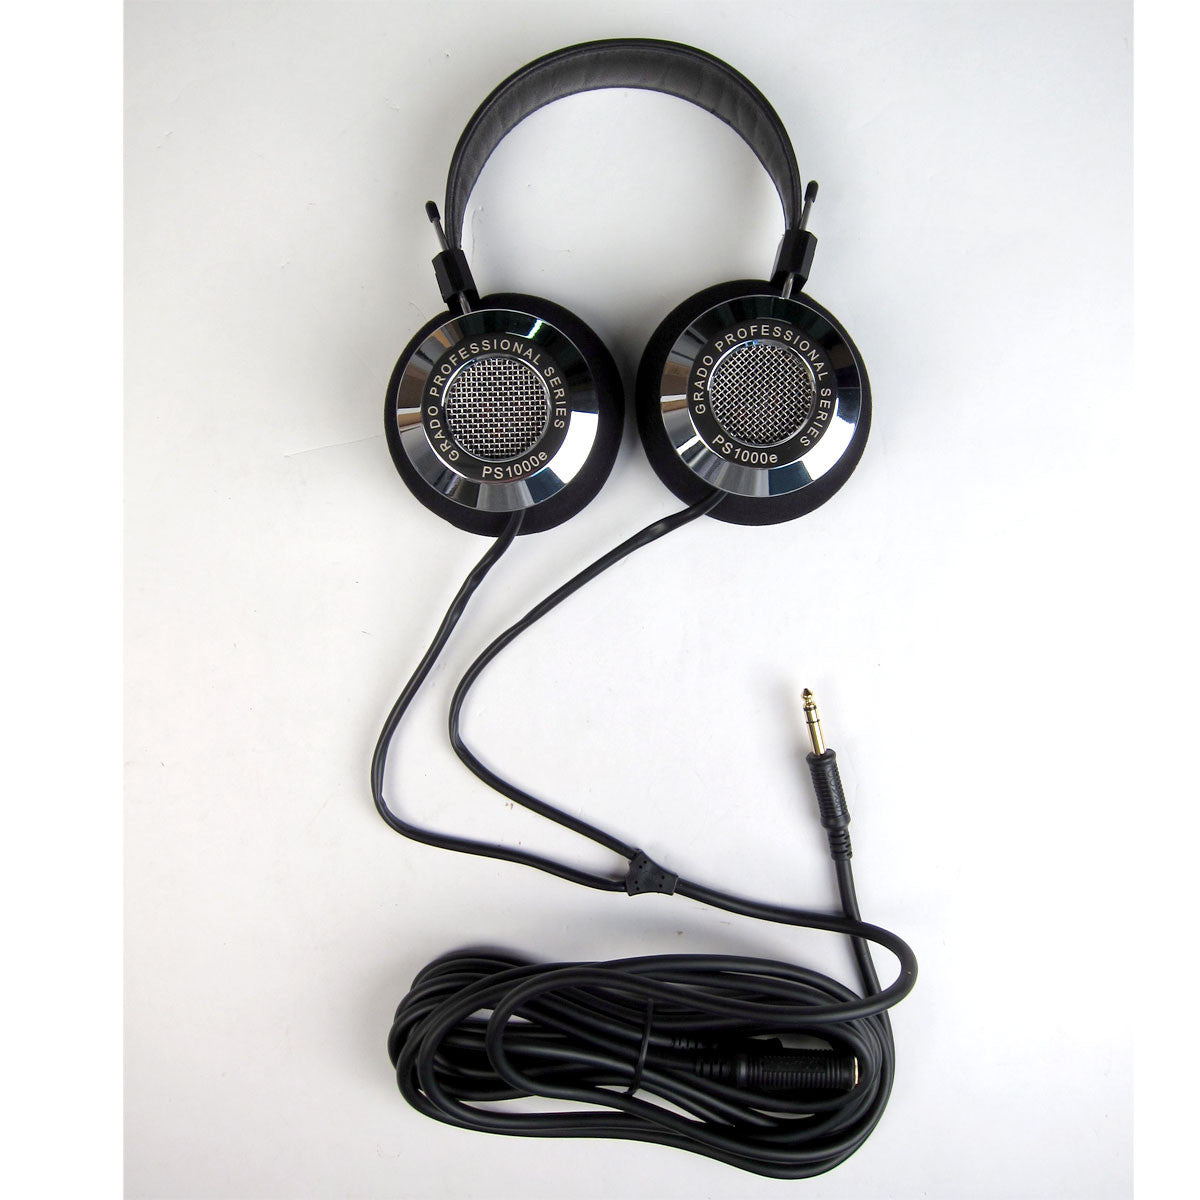 Grado: PS1000e Headphones laydown